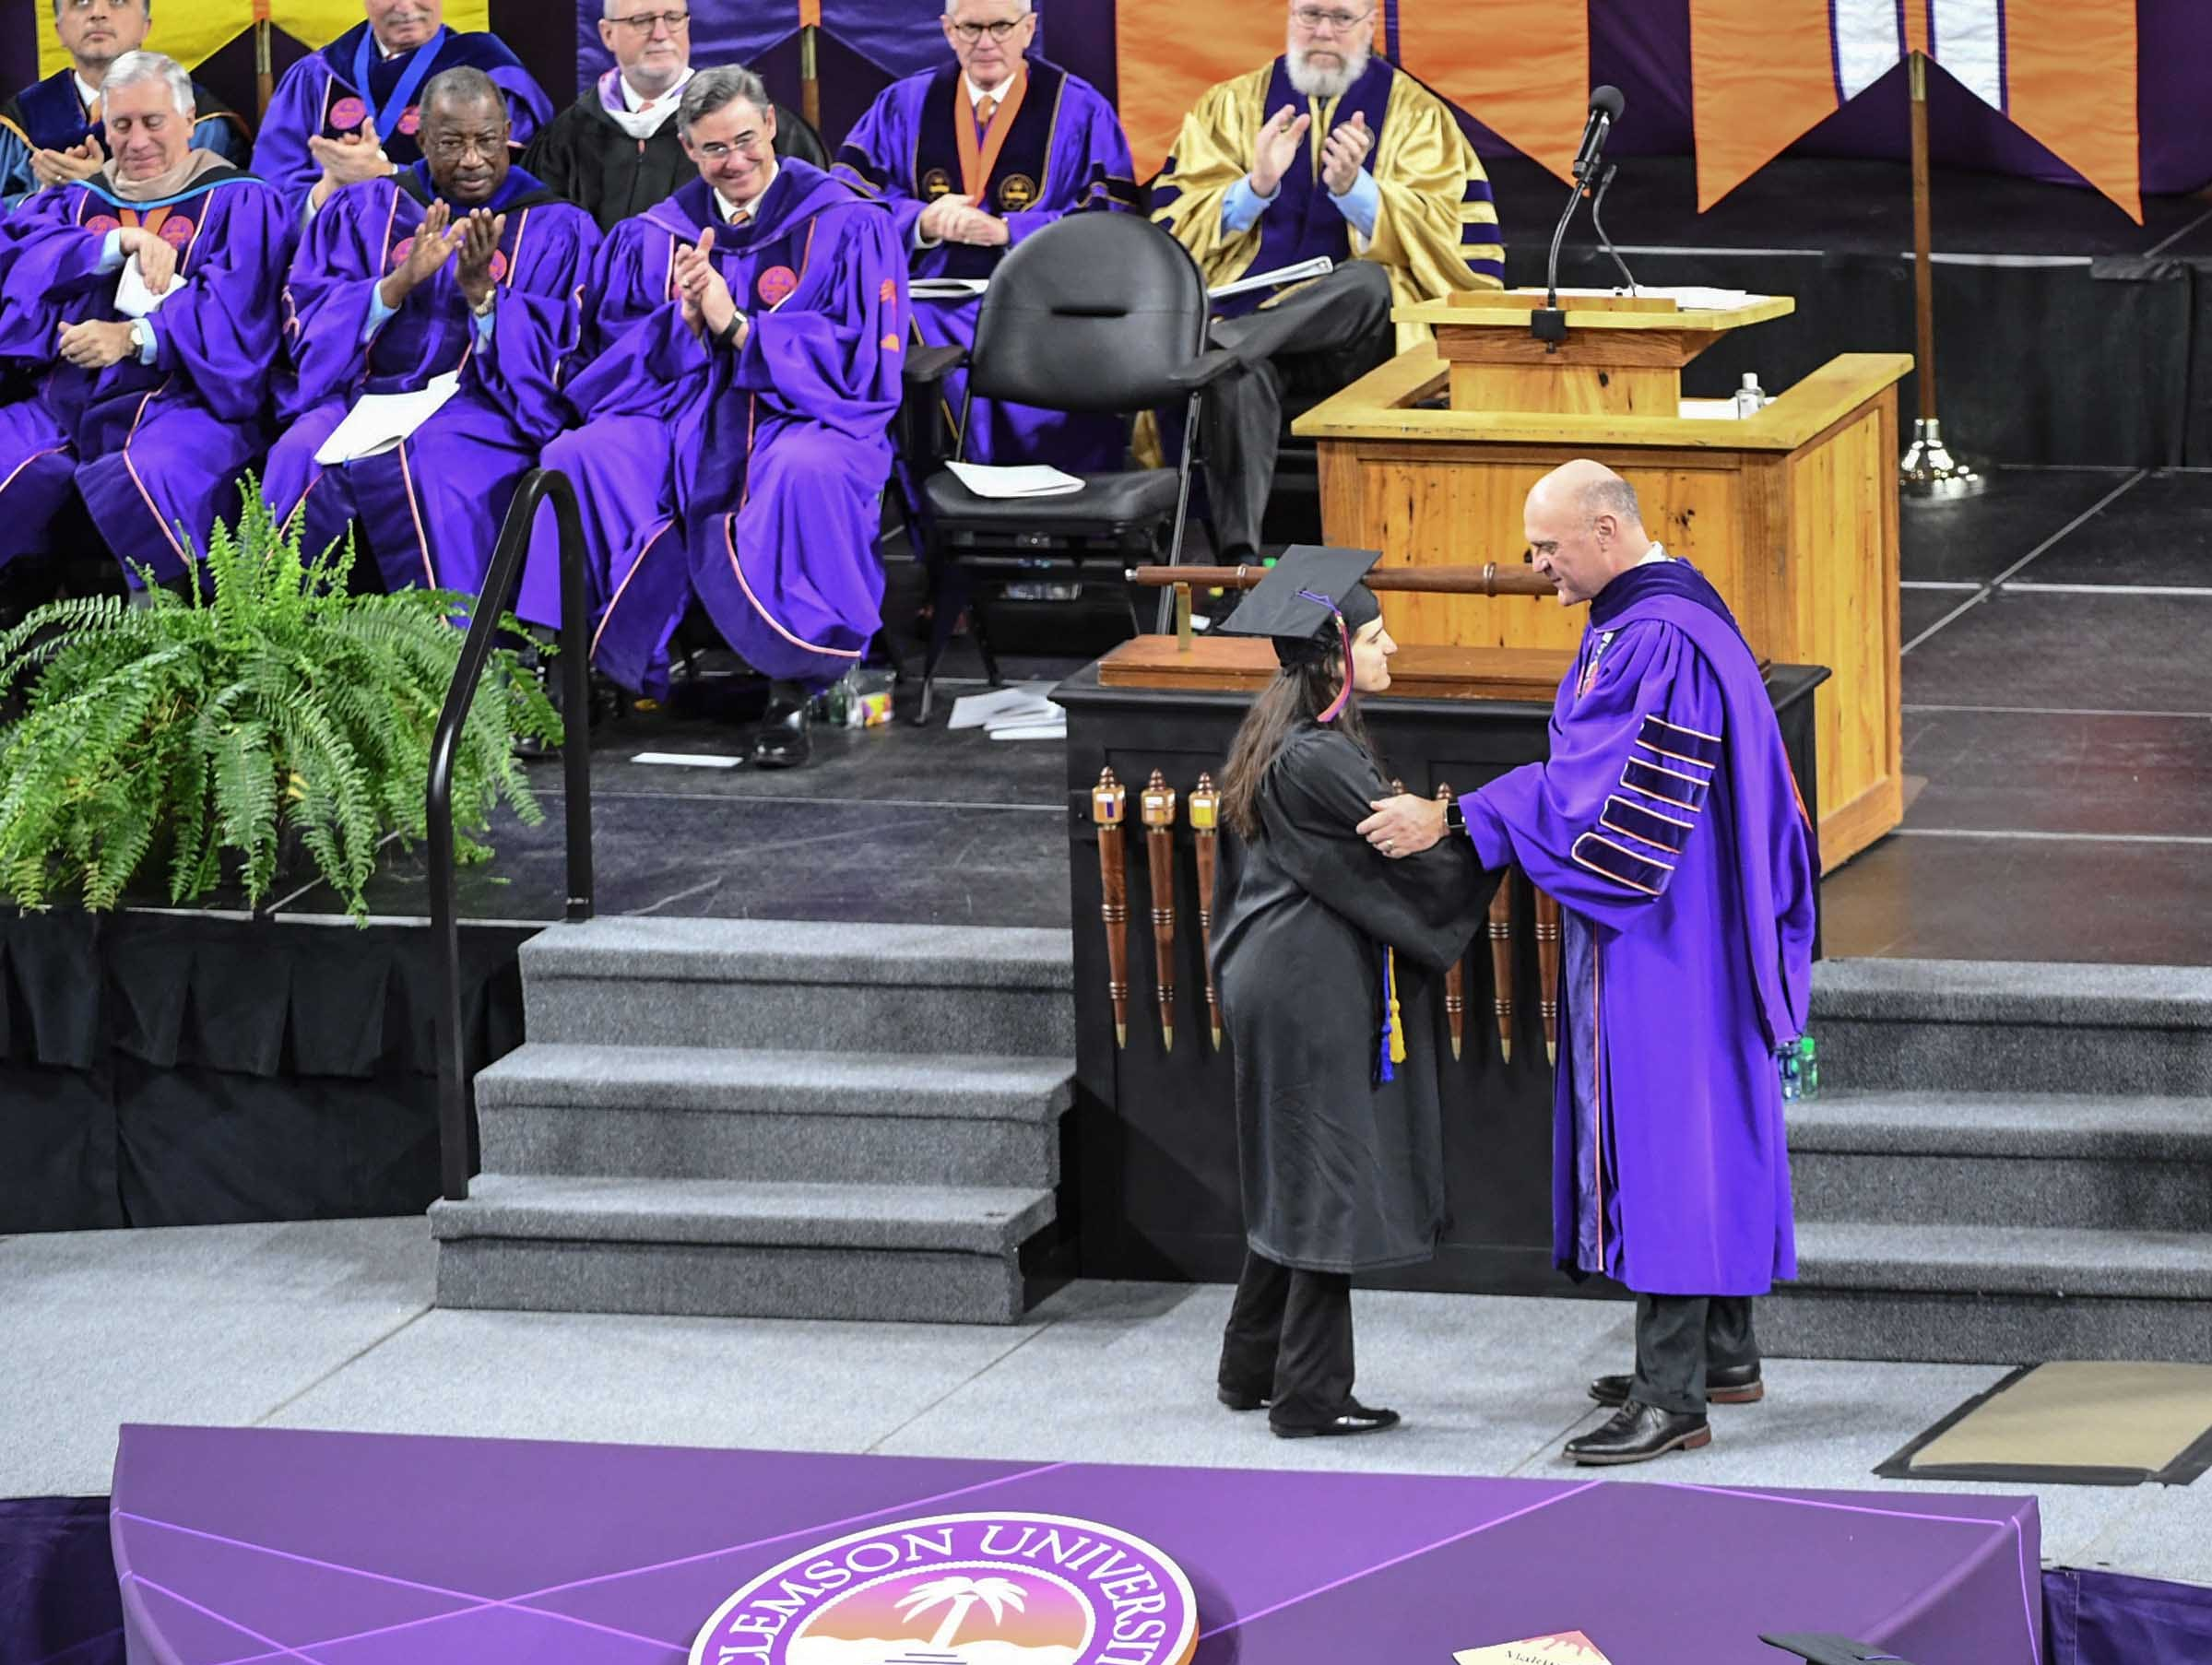 Miriam Lozneanu,  who is nearly blind and deaf, shakes hands with President Jim Clements during Clemson University graduation ceremony Thursday morning in Littlejohn Coliseum in Clemson. She graduated Thursday with a degree from the College of Engineering, Computing and Applied Sciences at Clemson University.